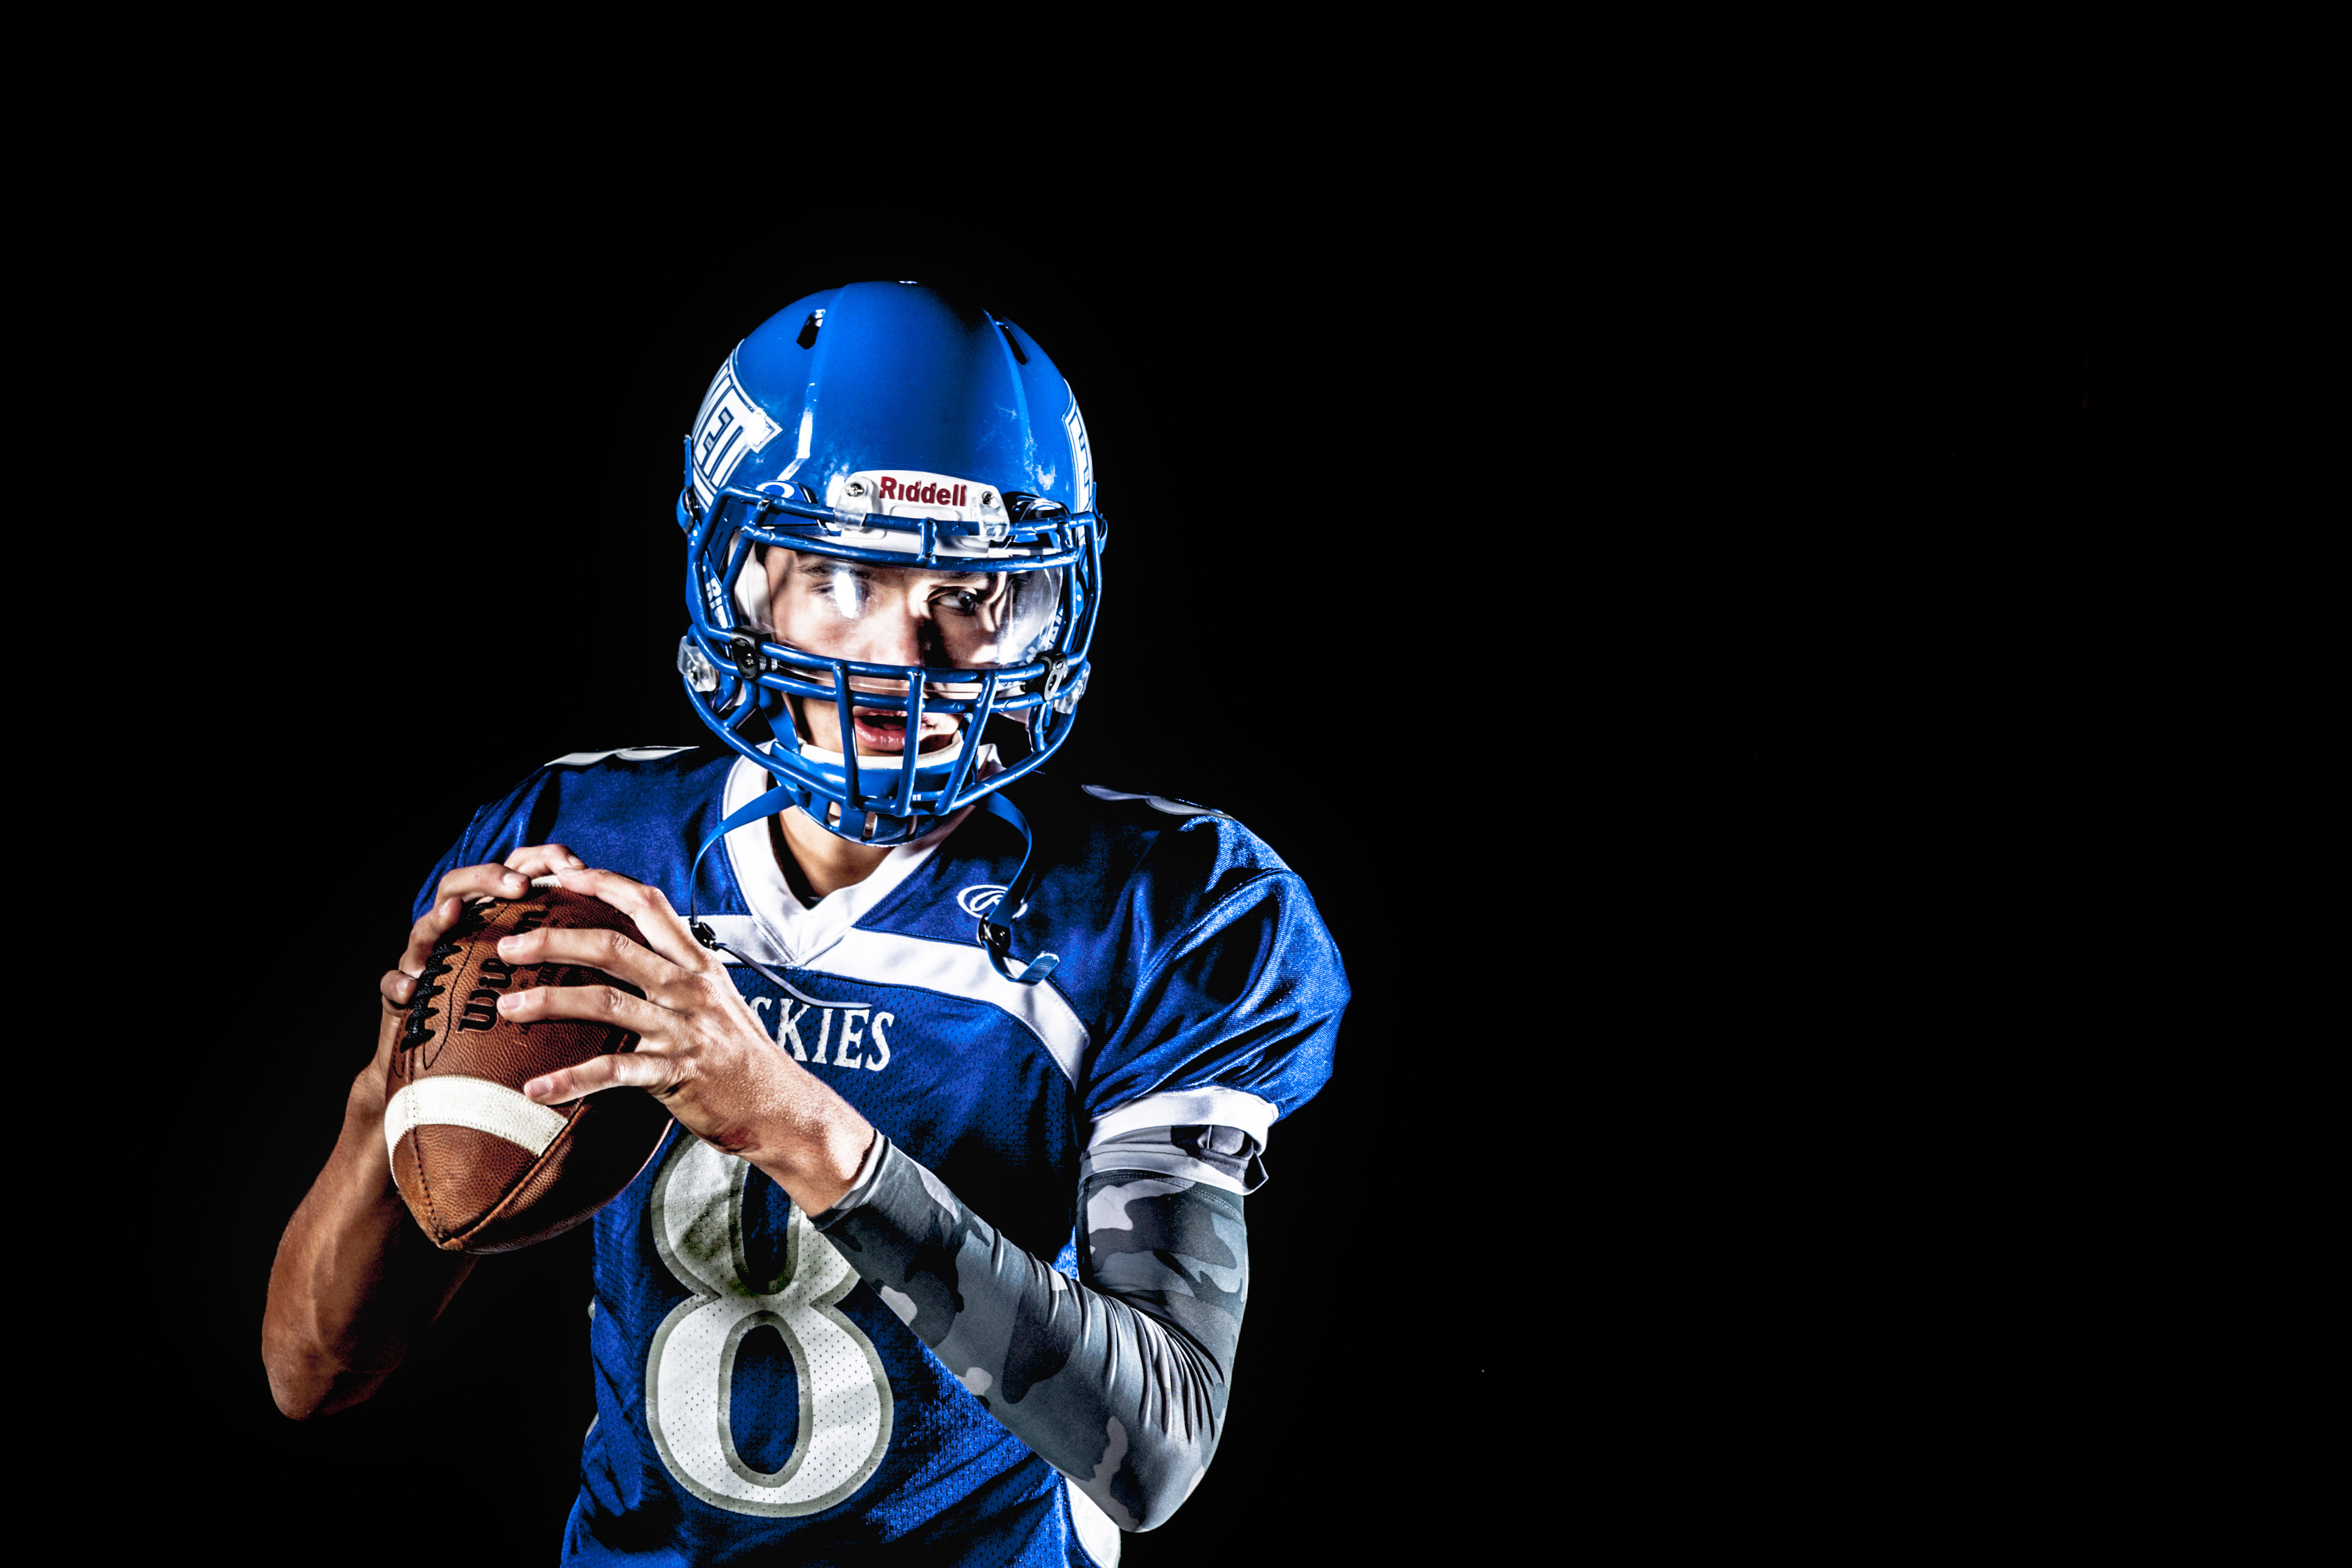 Football Player Gallery: Football-player-in-action-portrait Image